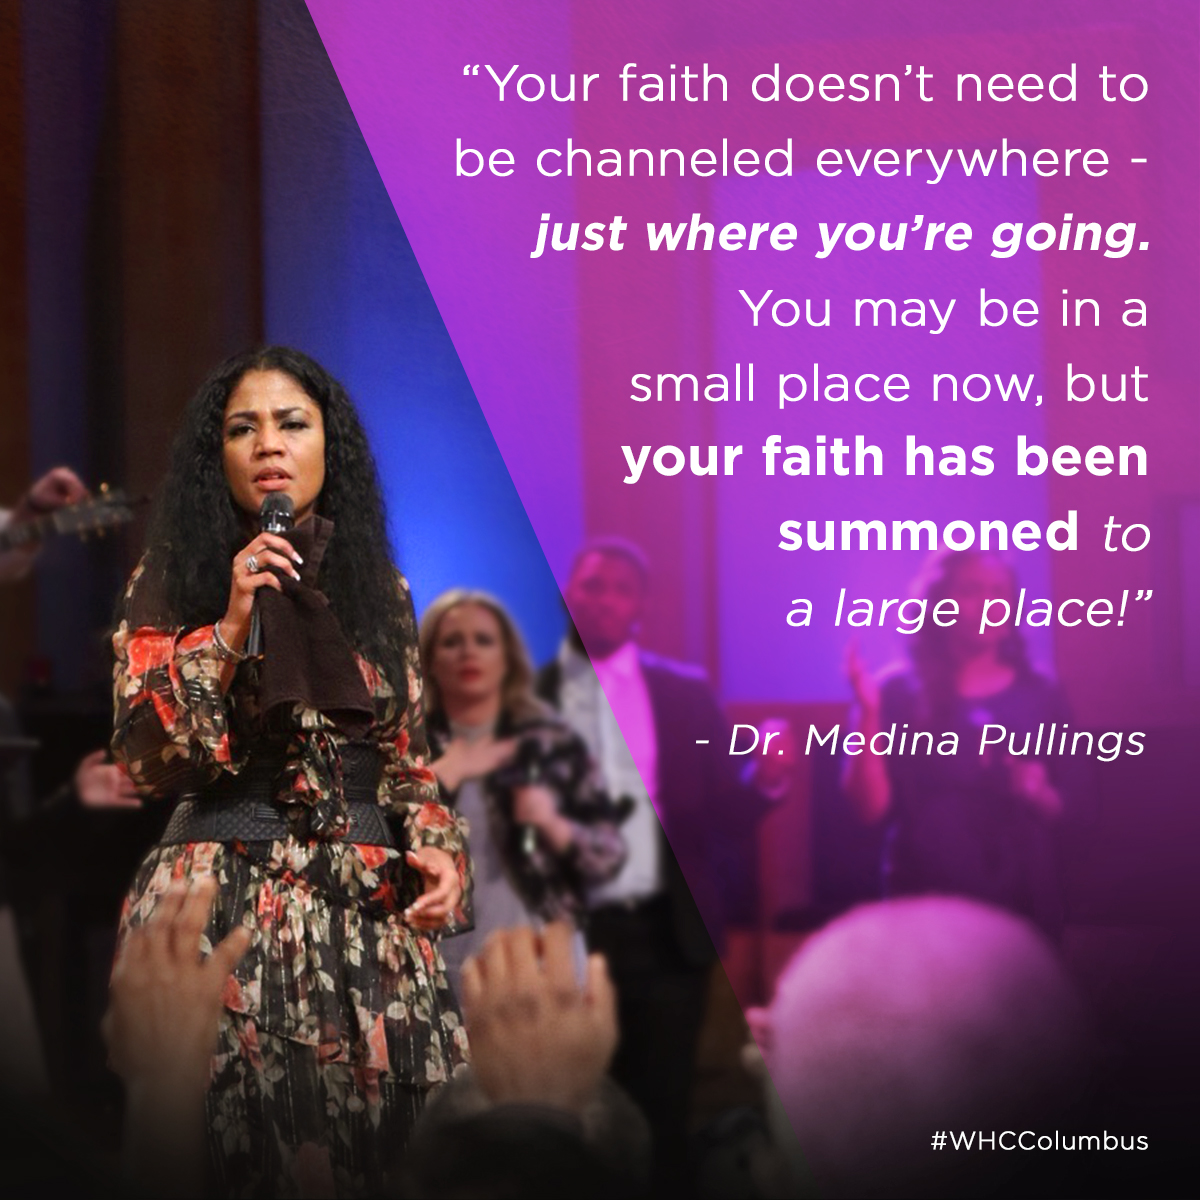 """Your faith doesn't need to be channeled everywhere - just where you're going. You may be in a small place now, bit your faith has been summoned to a large place!"" – Dr. Medina Pullings"